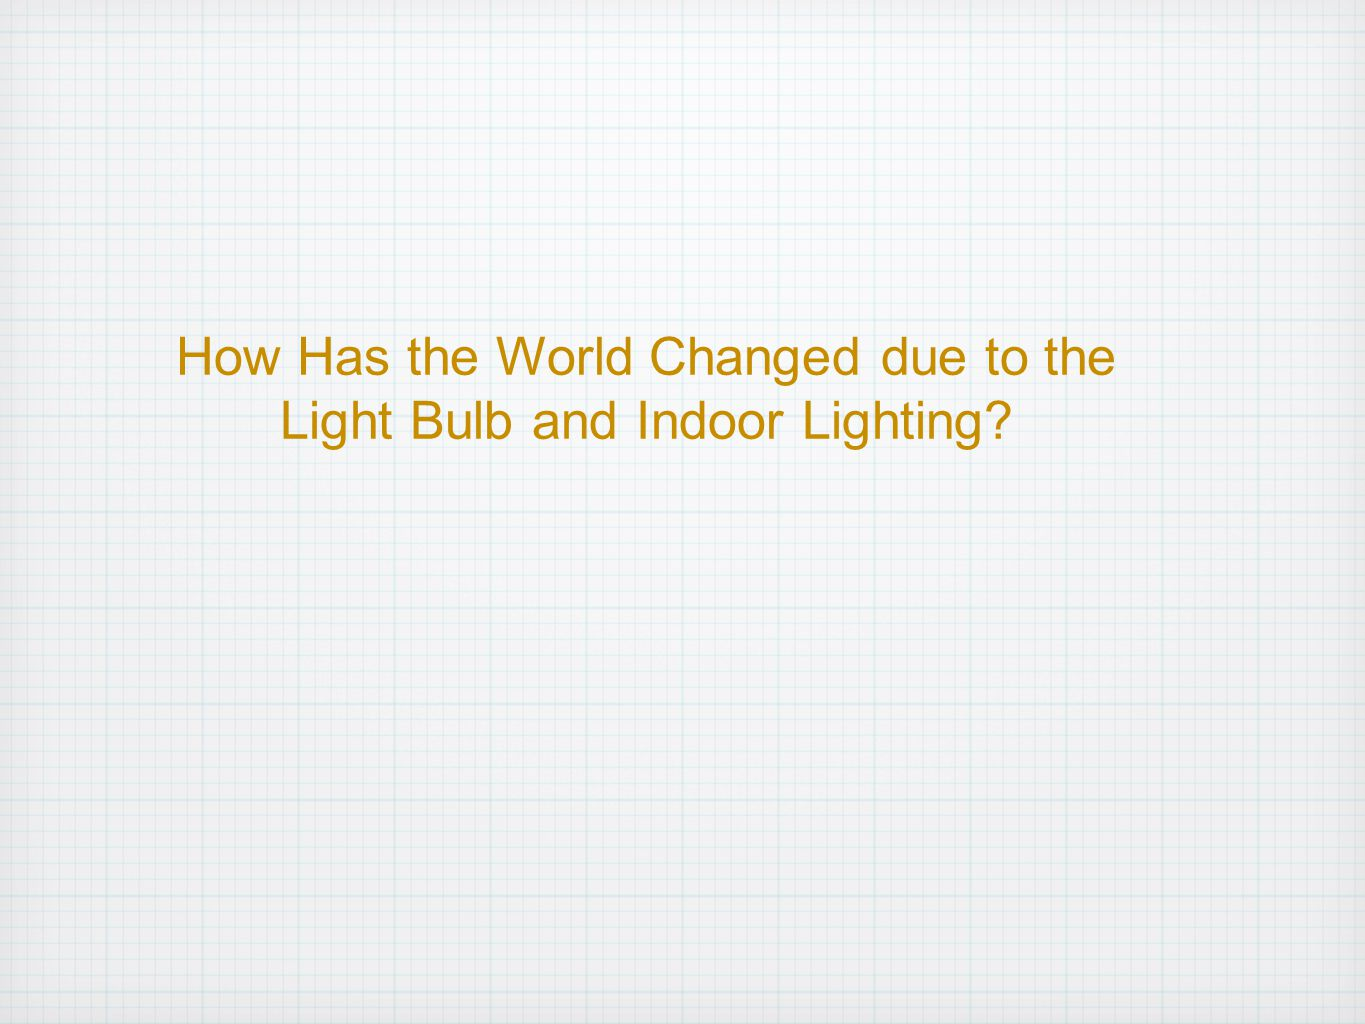 How Has the World Changed due to the Light Bulb and Indoor Lighting